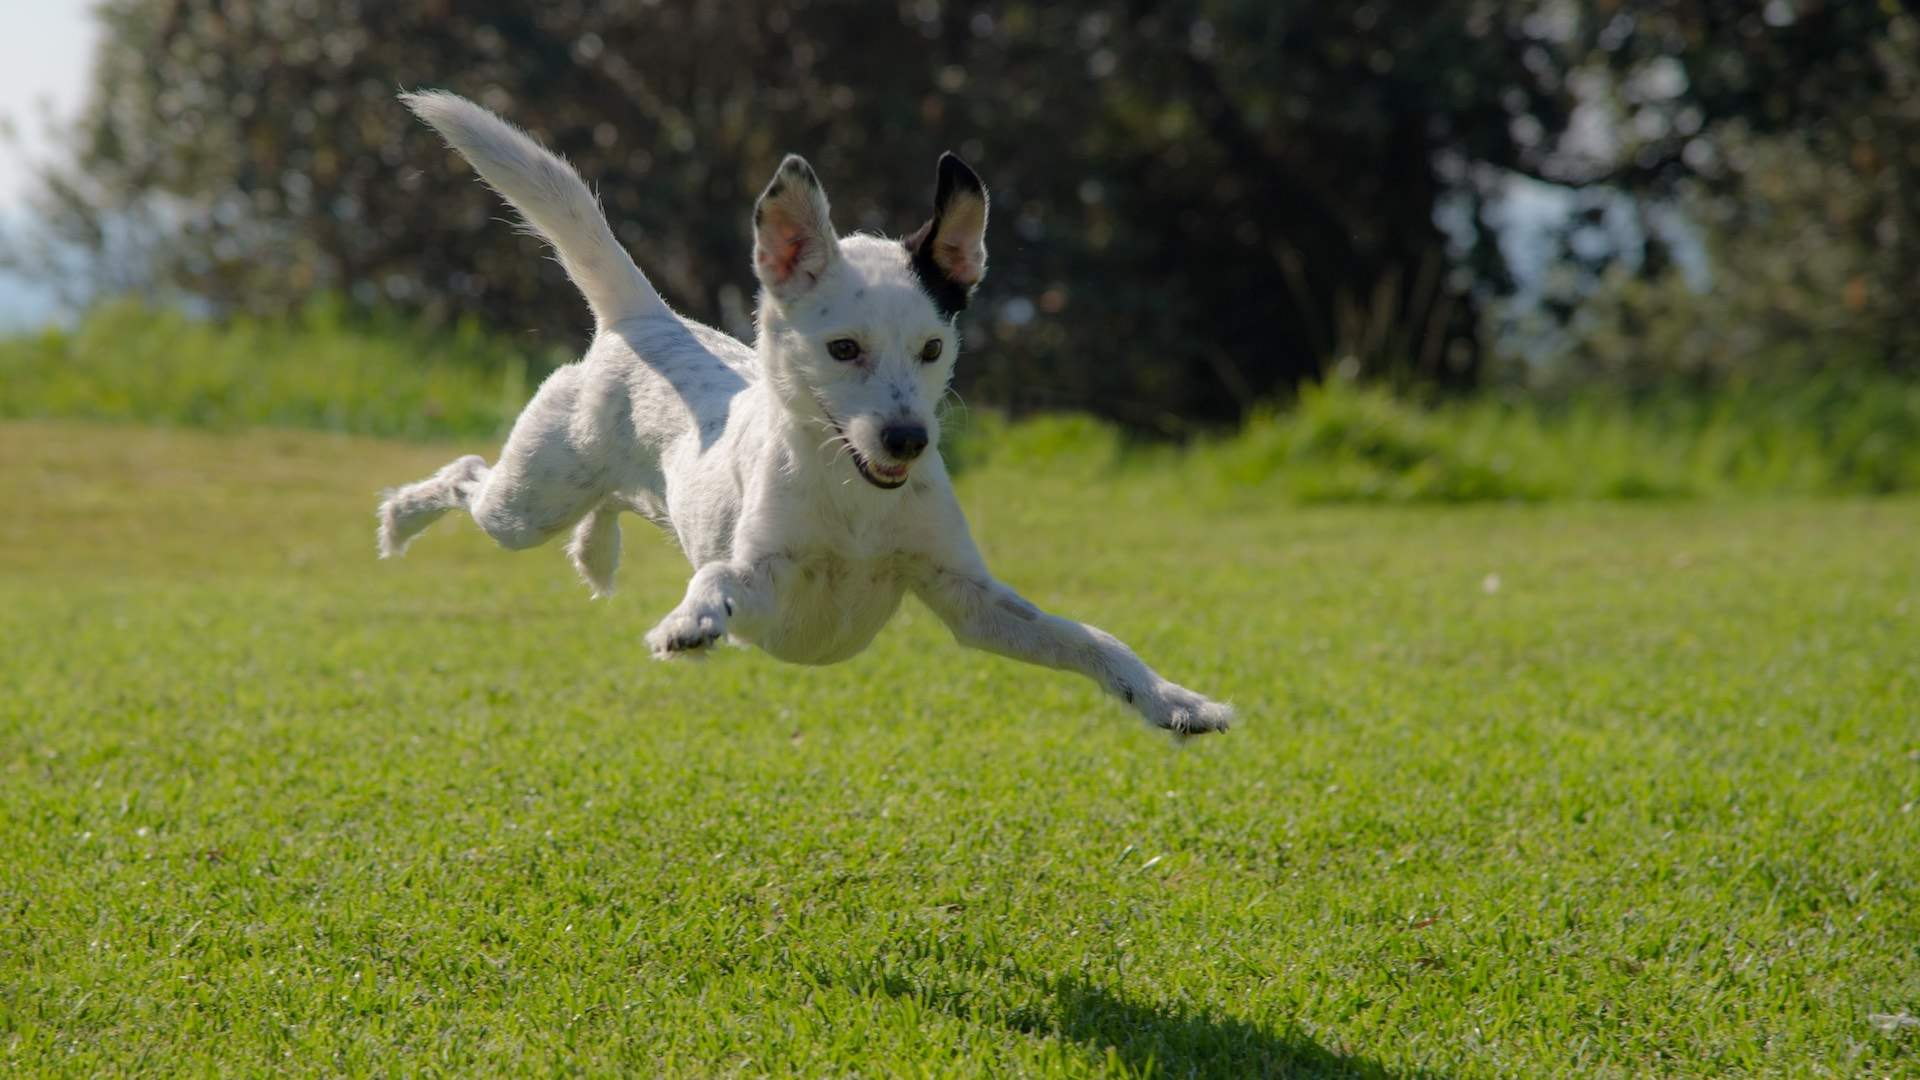 Melbourne's Inner Suburbs Are Getting 24 New Parks and Off-Leash Dog Areas